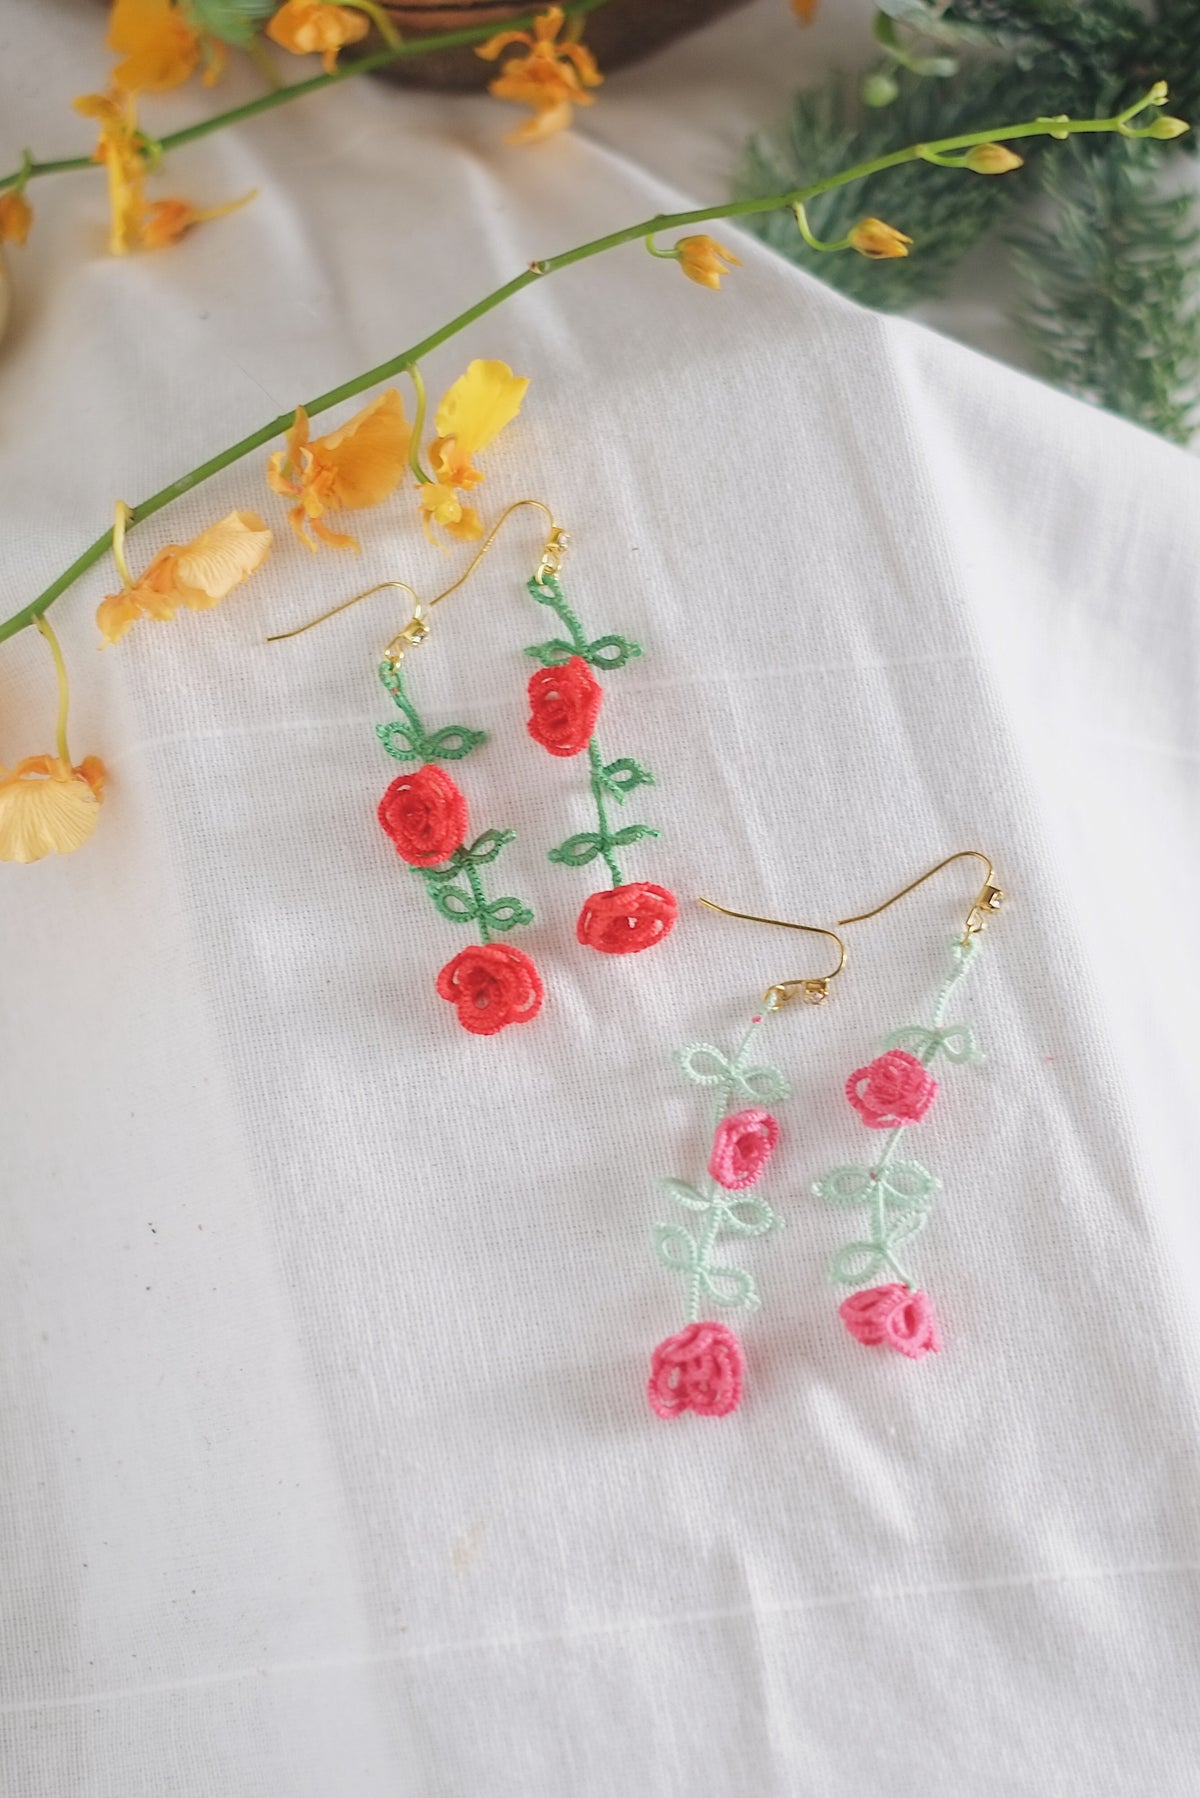 Tatted Rose Earrings by L - hello flowers!